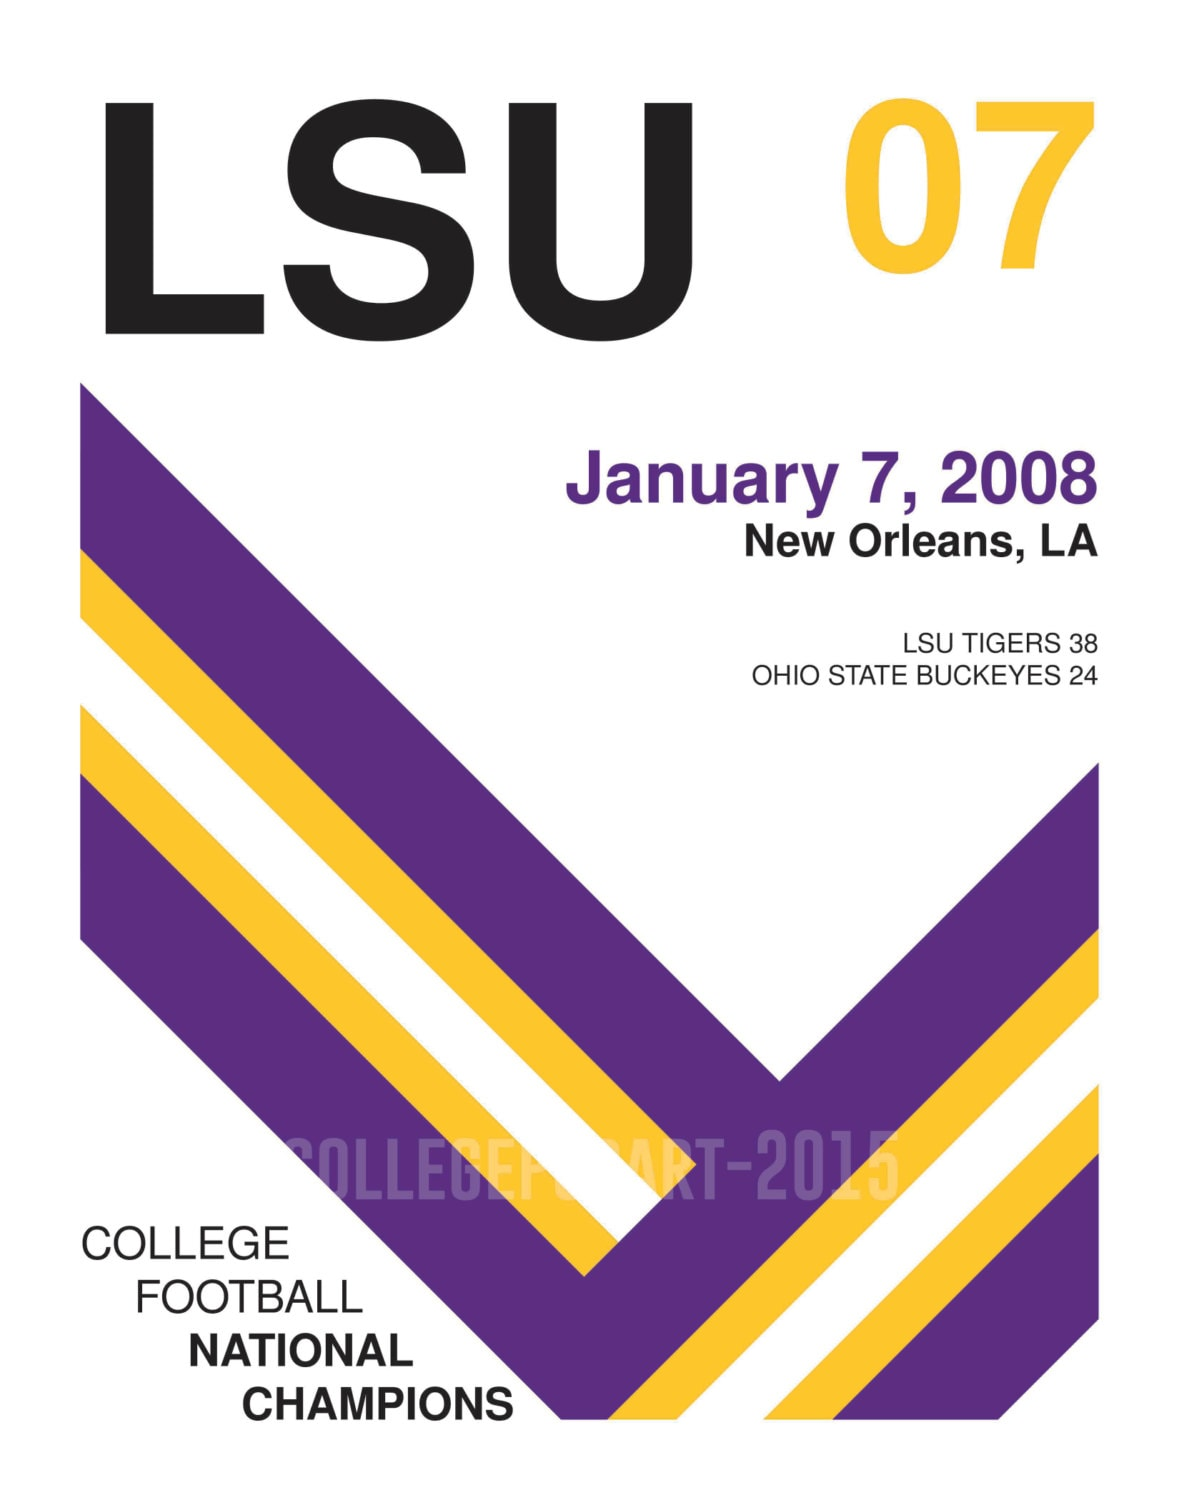 LSU Tigers 2007 College Football Champions Retro Style